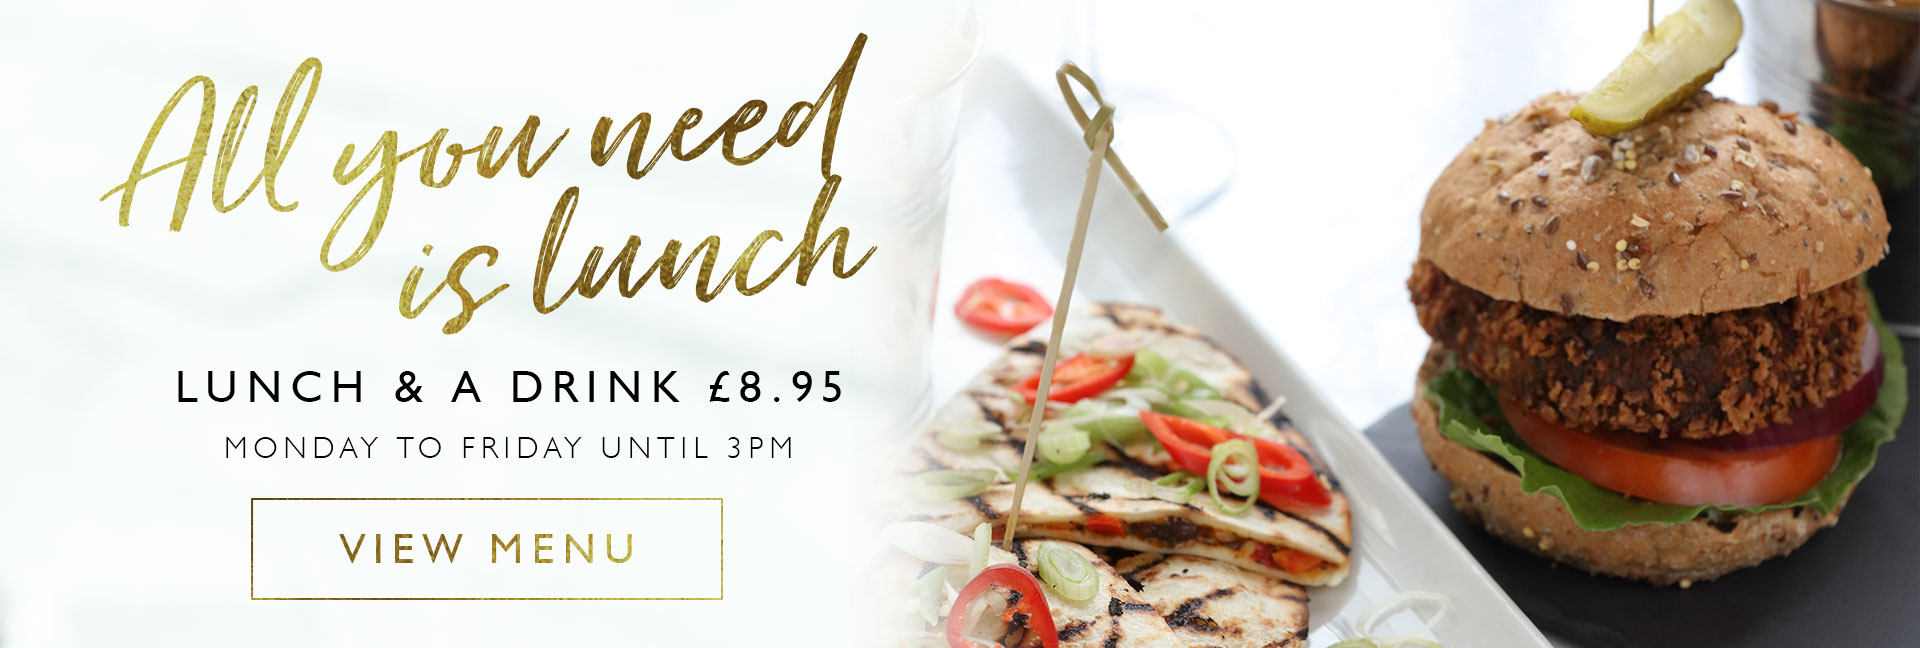 View our lunch offer at All Bar One Harrogate